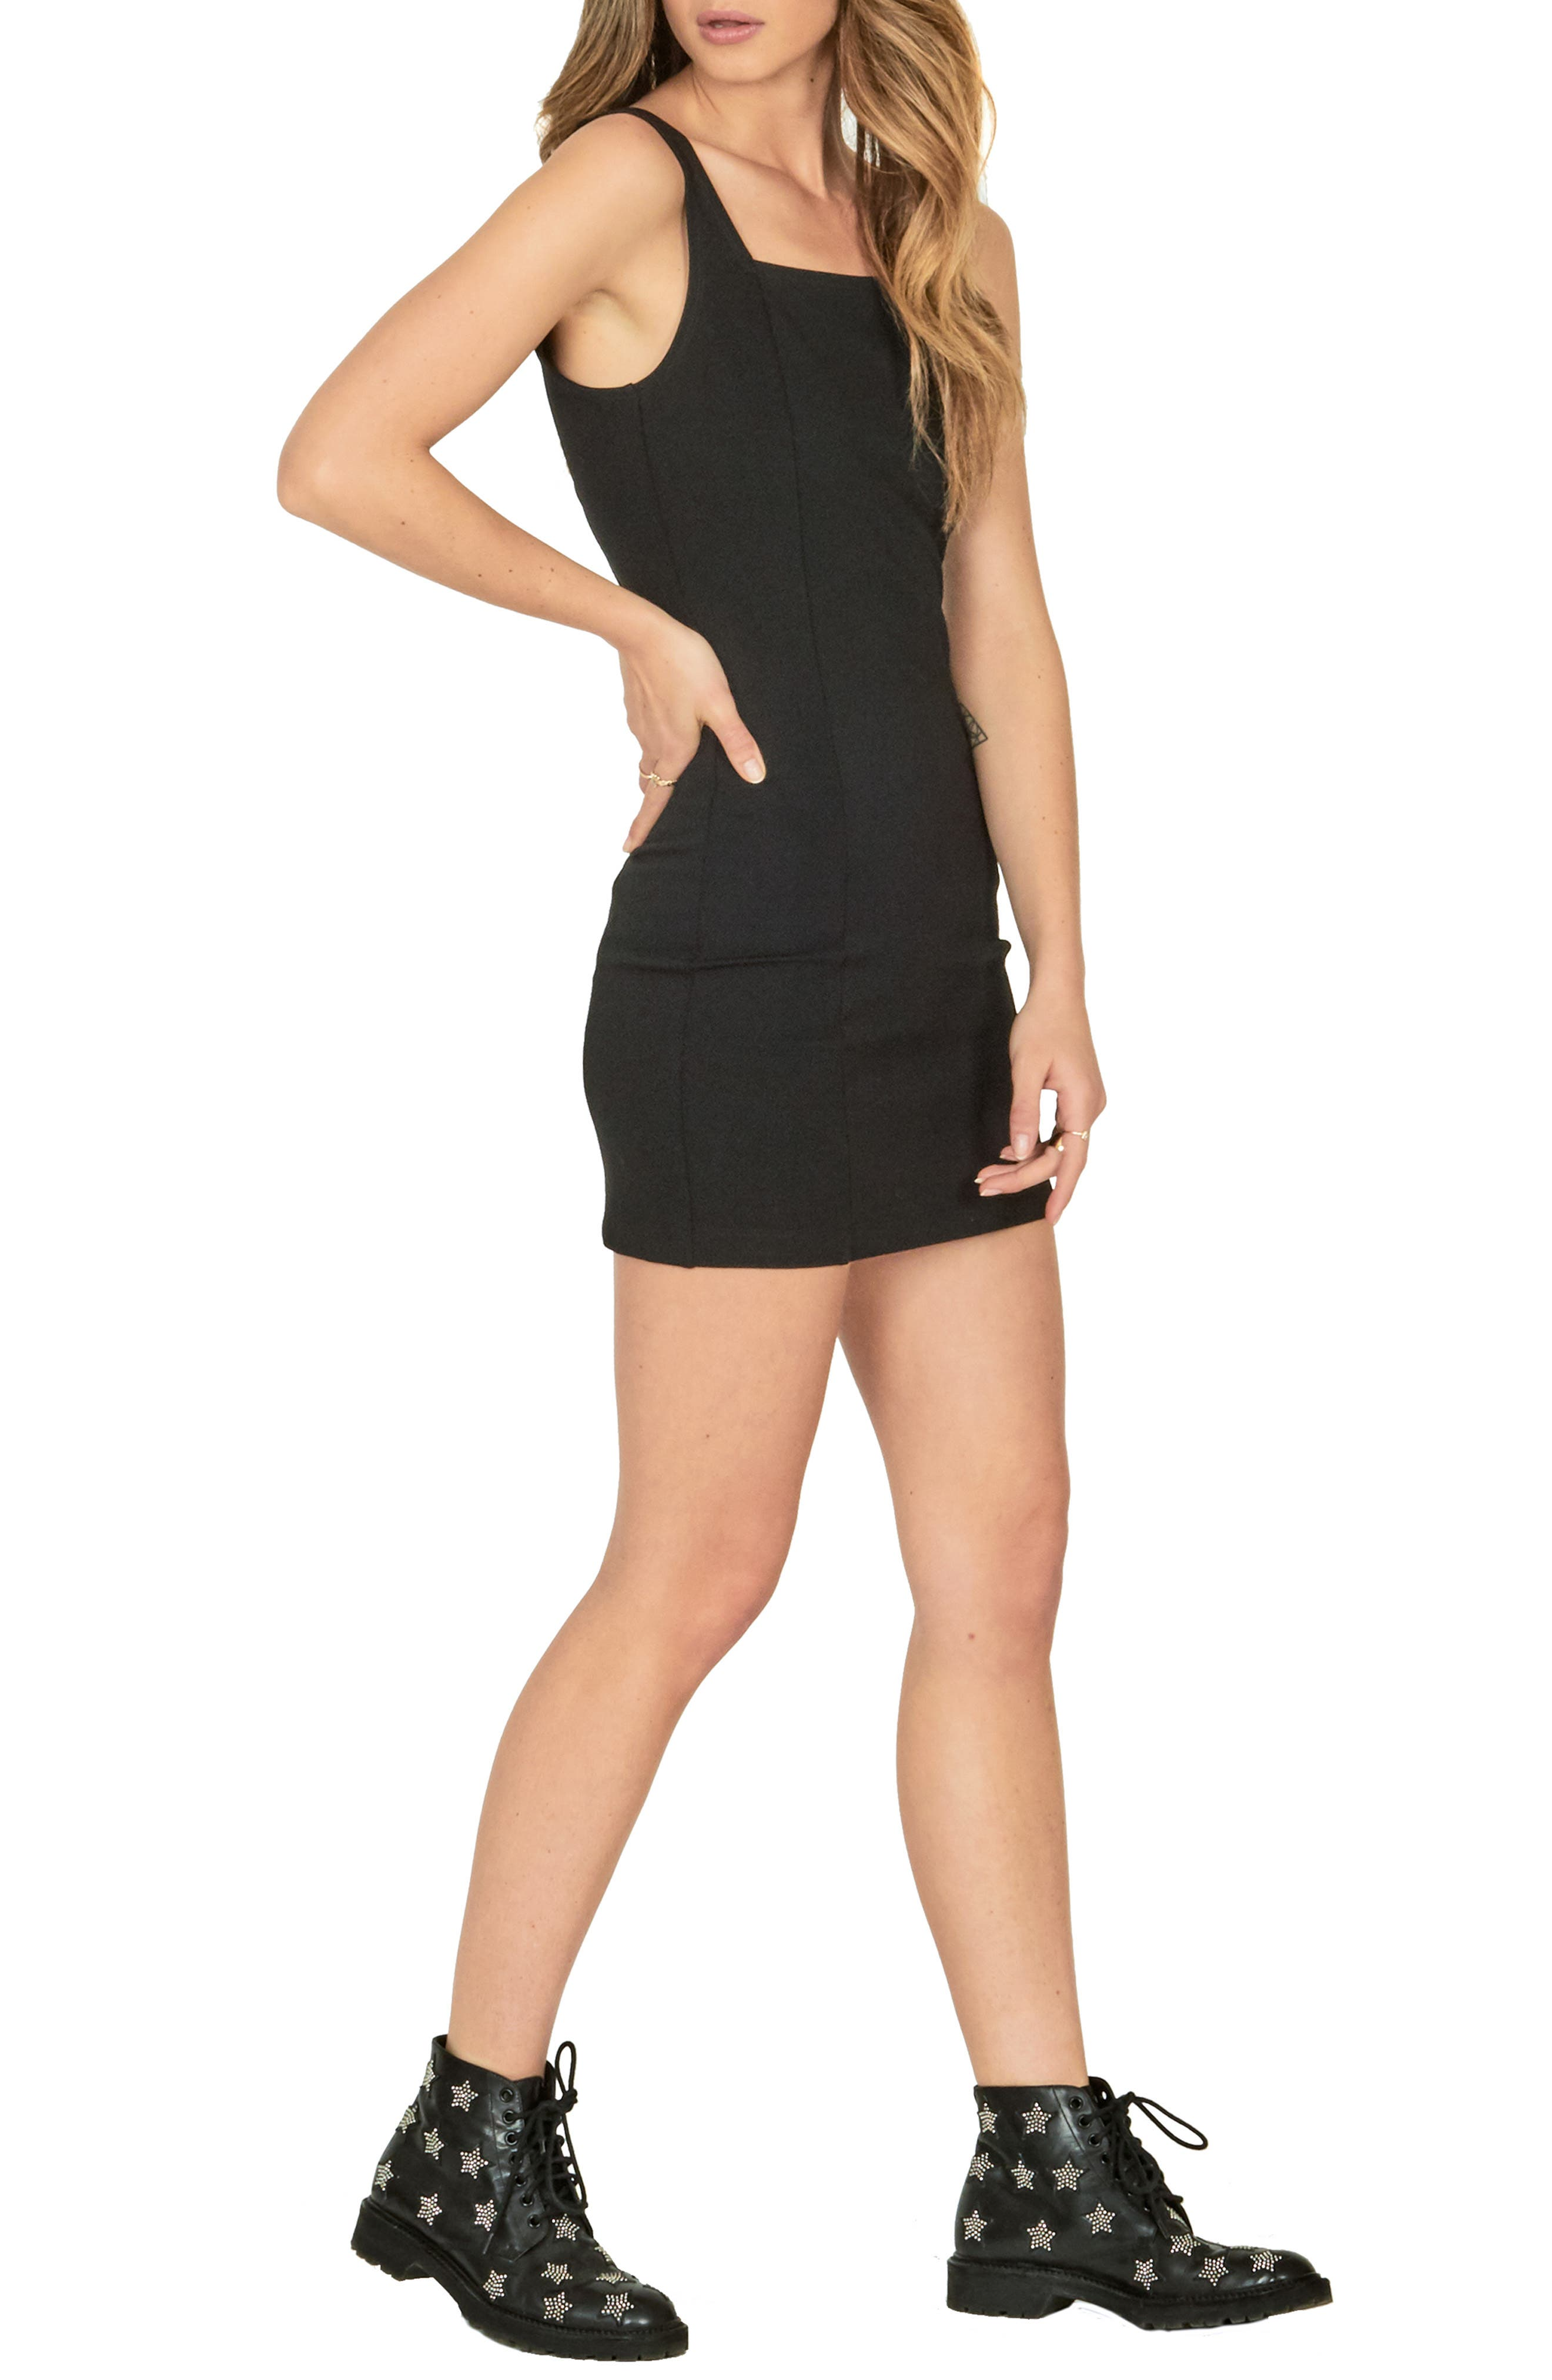 AMUSE SOCIETY Check It Dress in Black